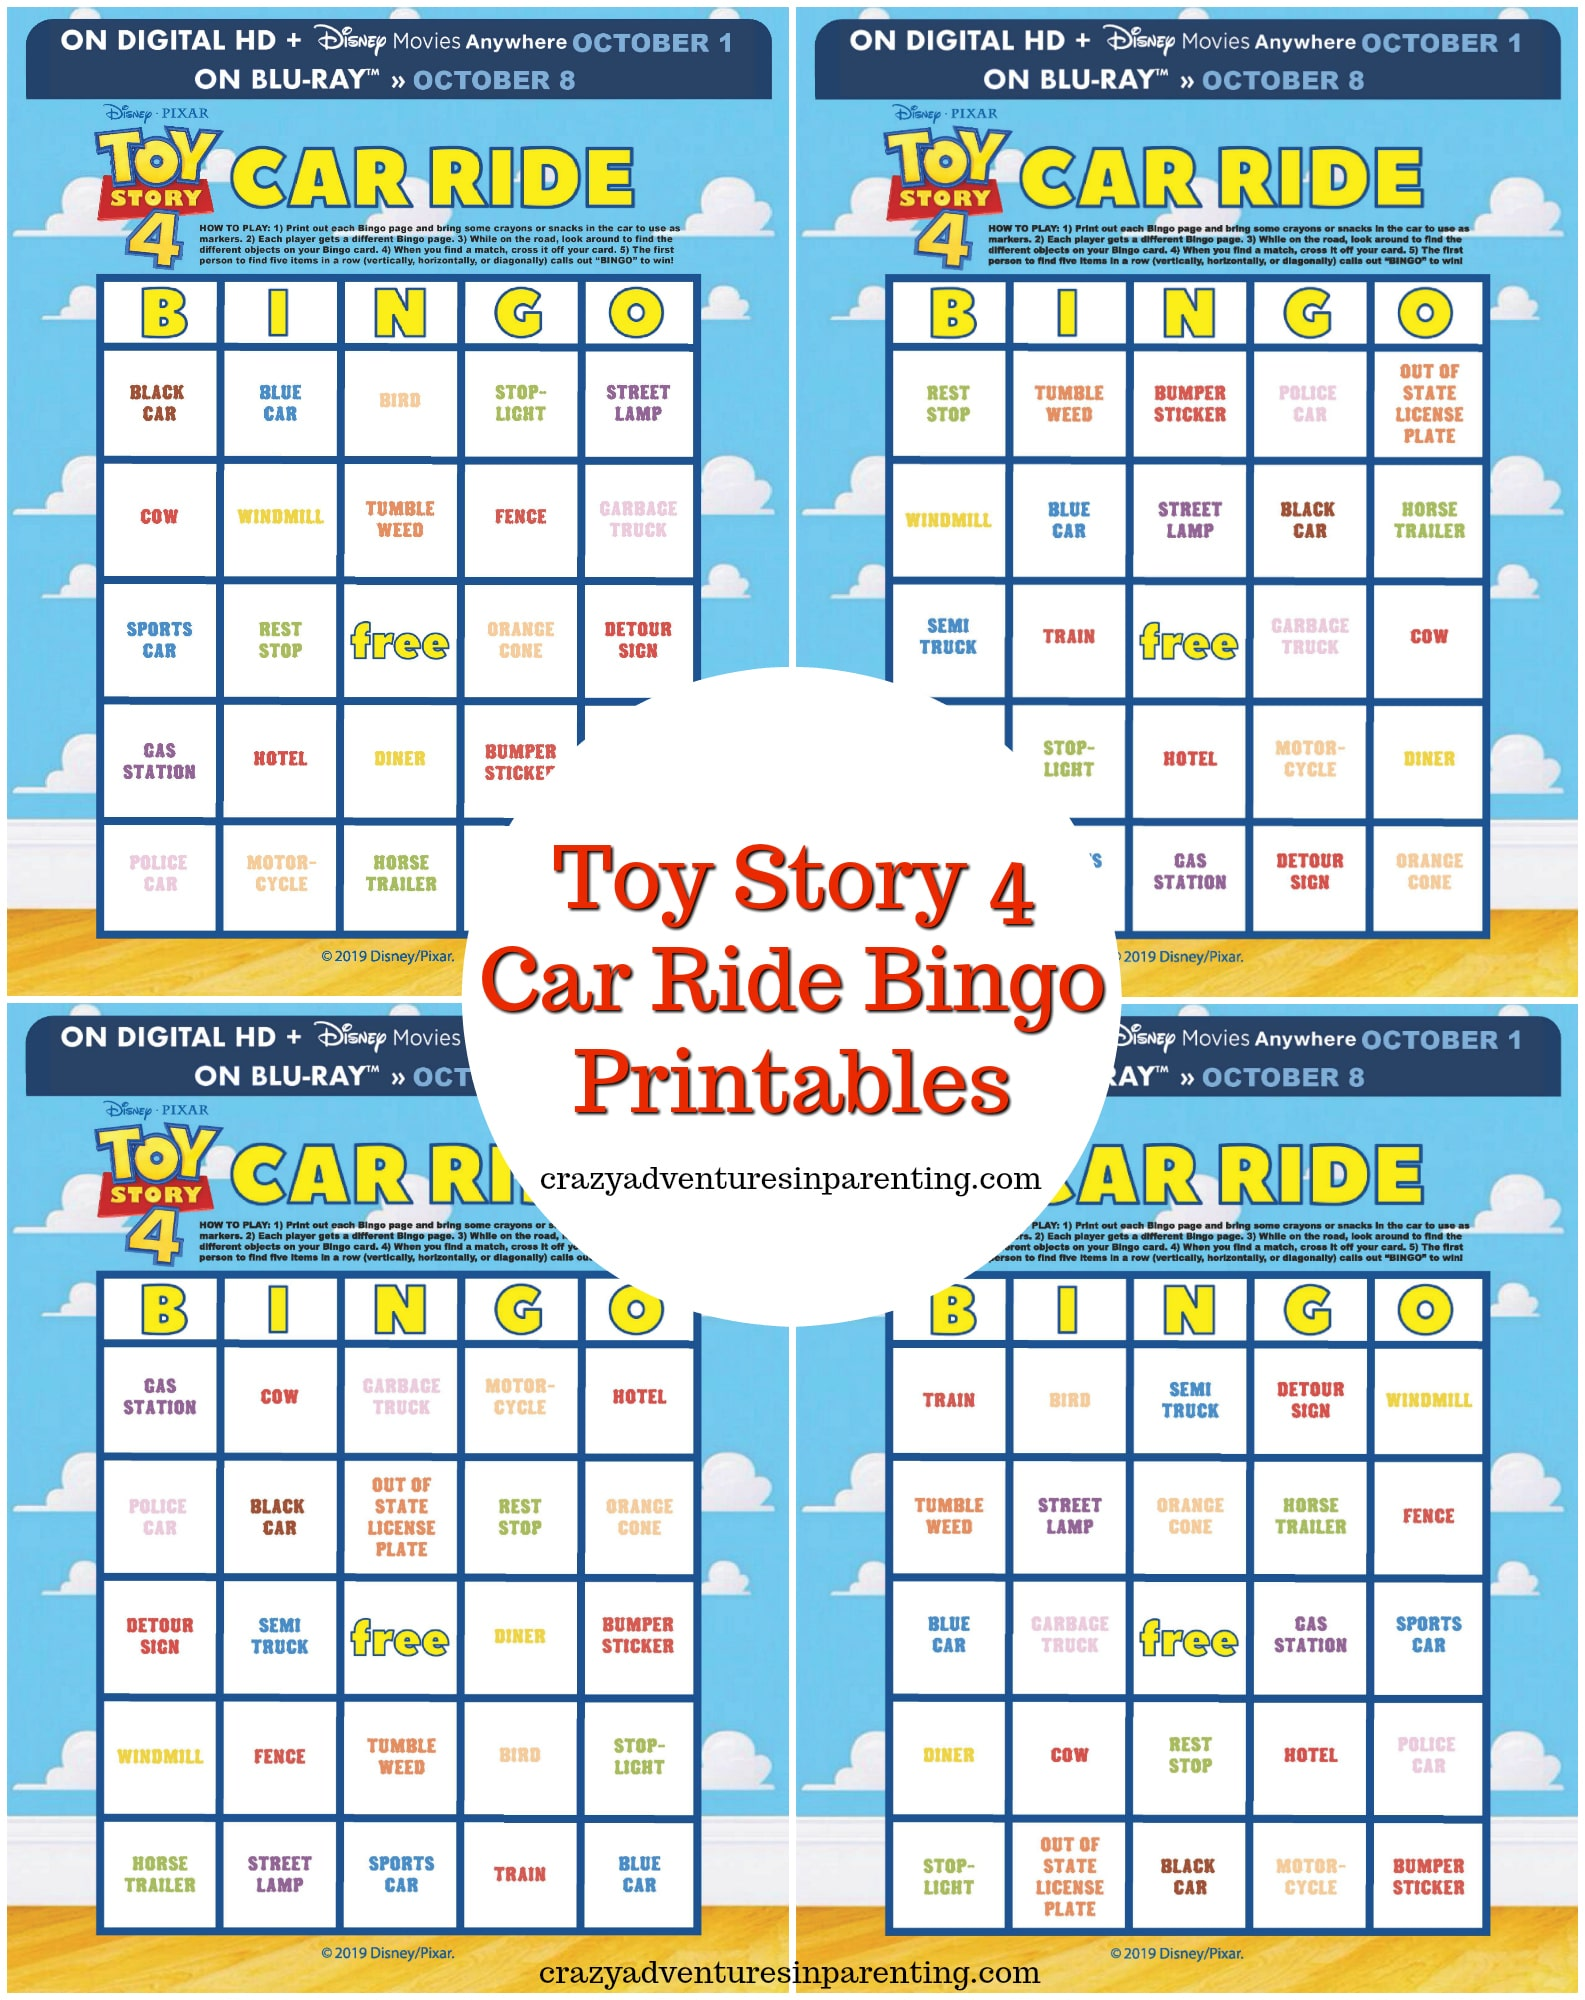 Toy Story 4 Car Ride Bingo Printables for Kids